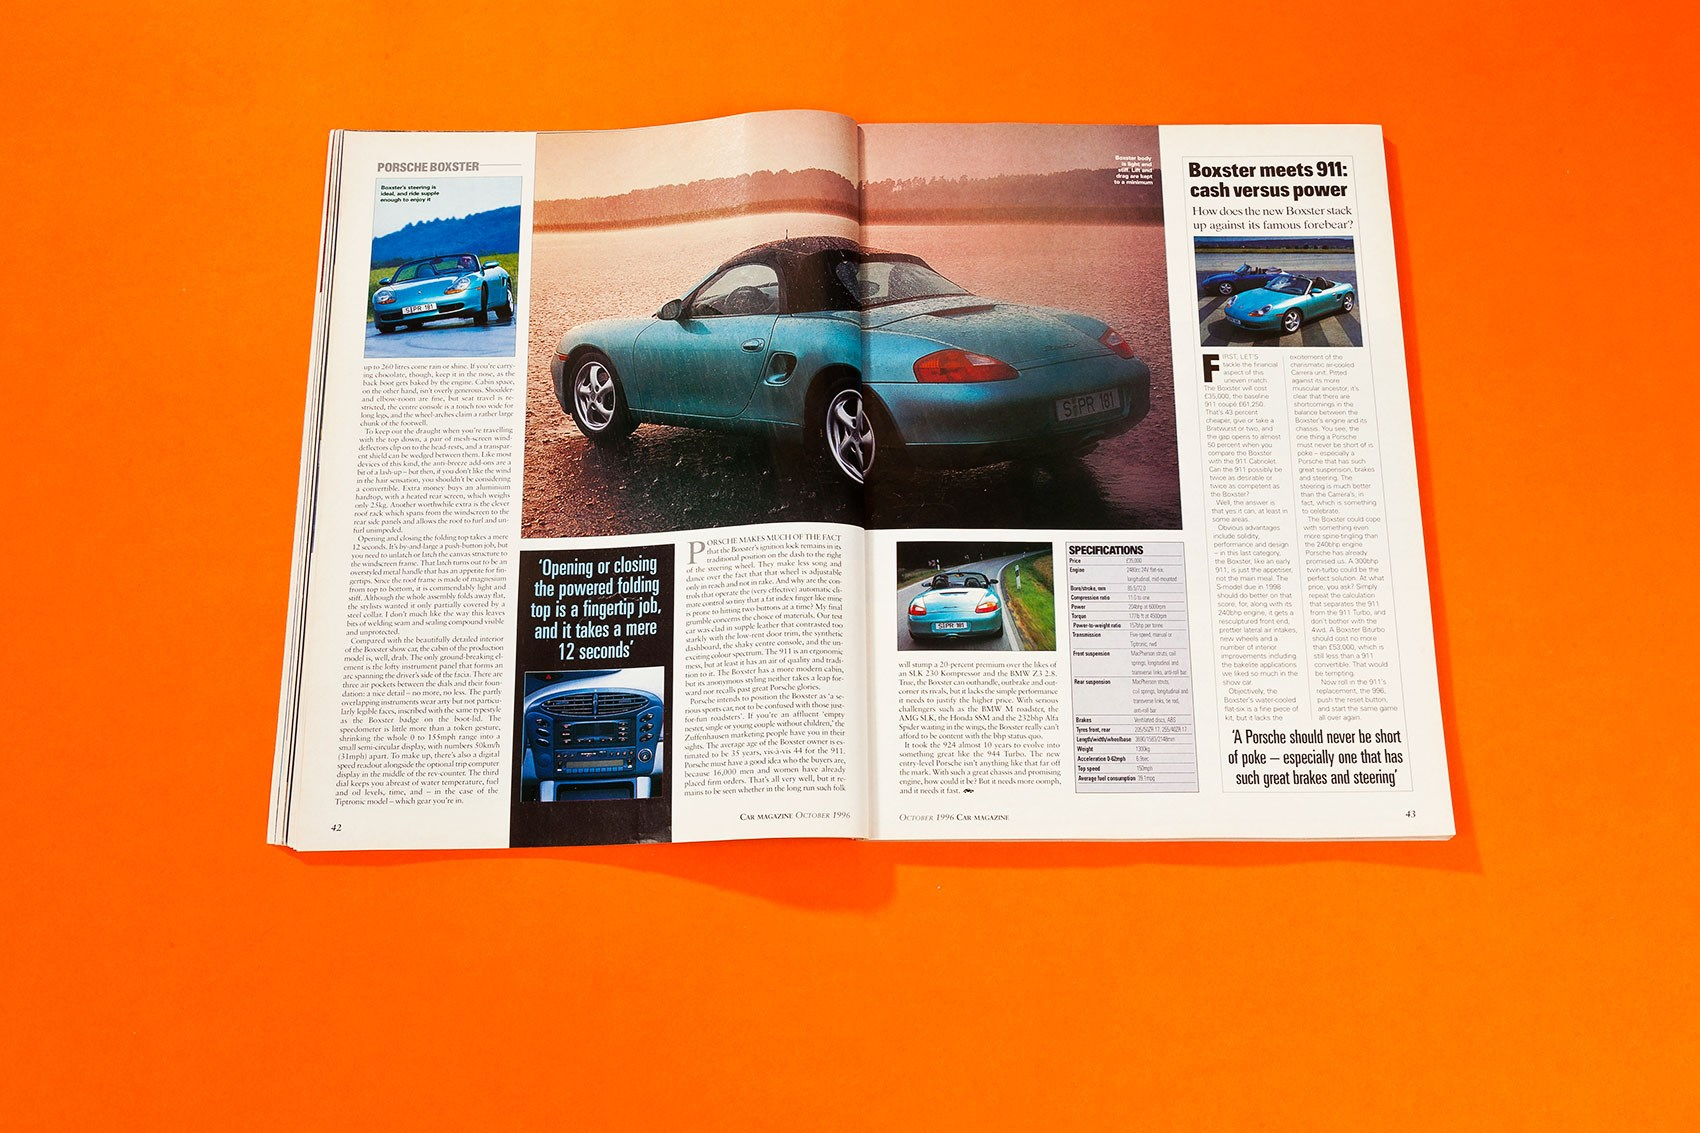 Seconds Out When We First Drove The Porsche Boxster Car Magazine 2001 Mg Zs Under Dash Fuse Box Diagram Georg Kacher Drives